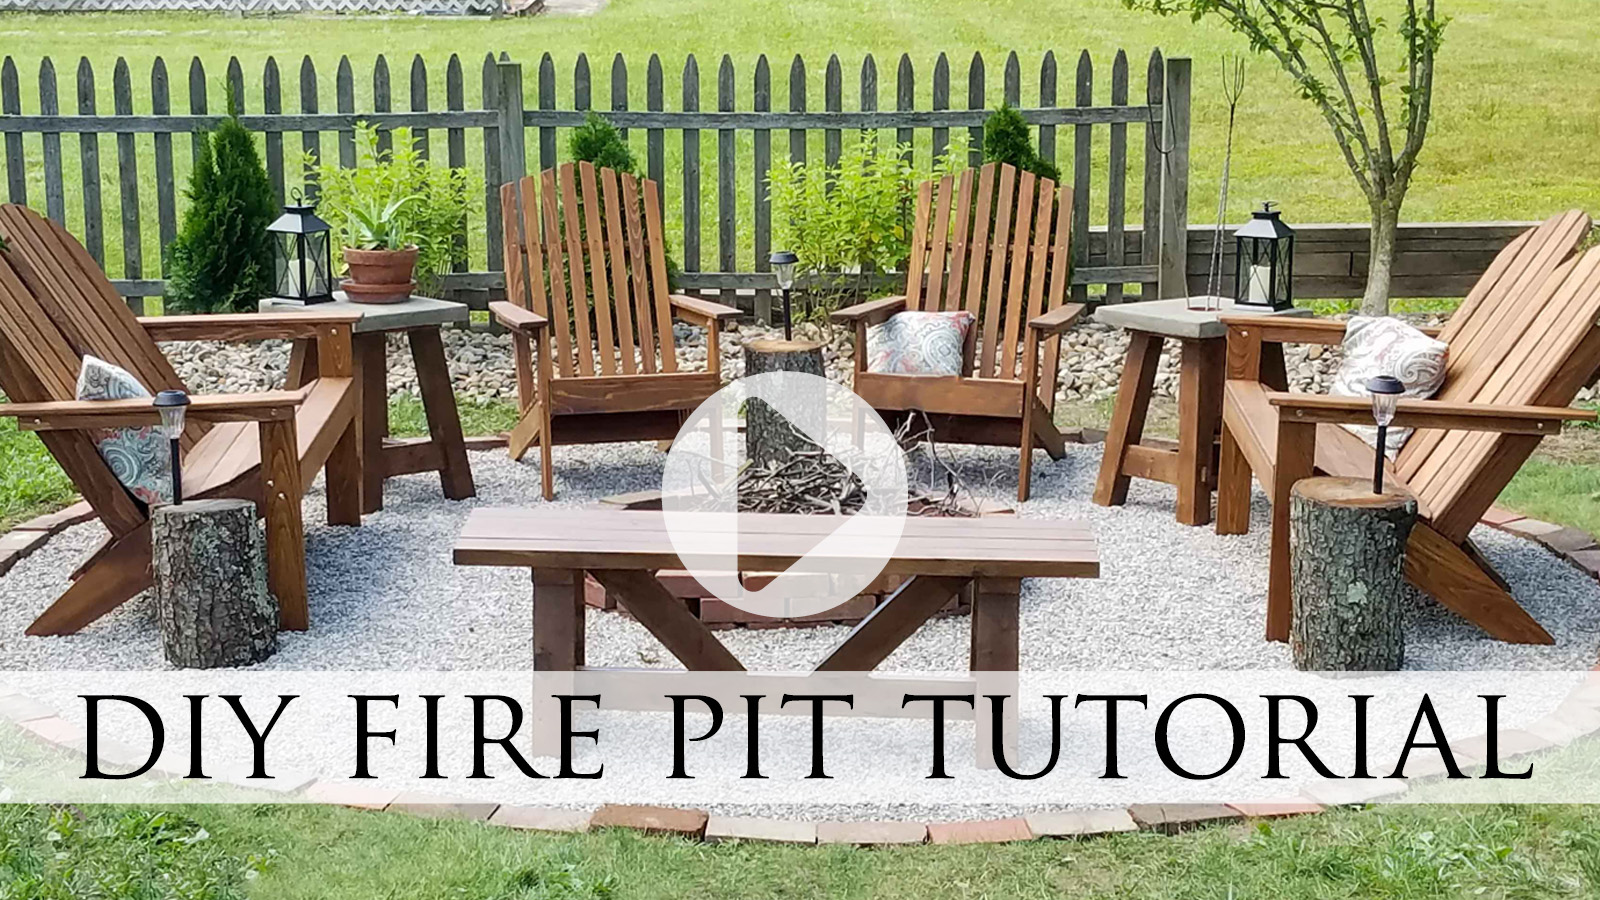 Video Tutorial for DIY Fire Pit by Larissa of Prodigal Pieces & Family | prodigalpieces.com #prodigalpieces